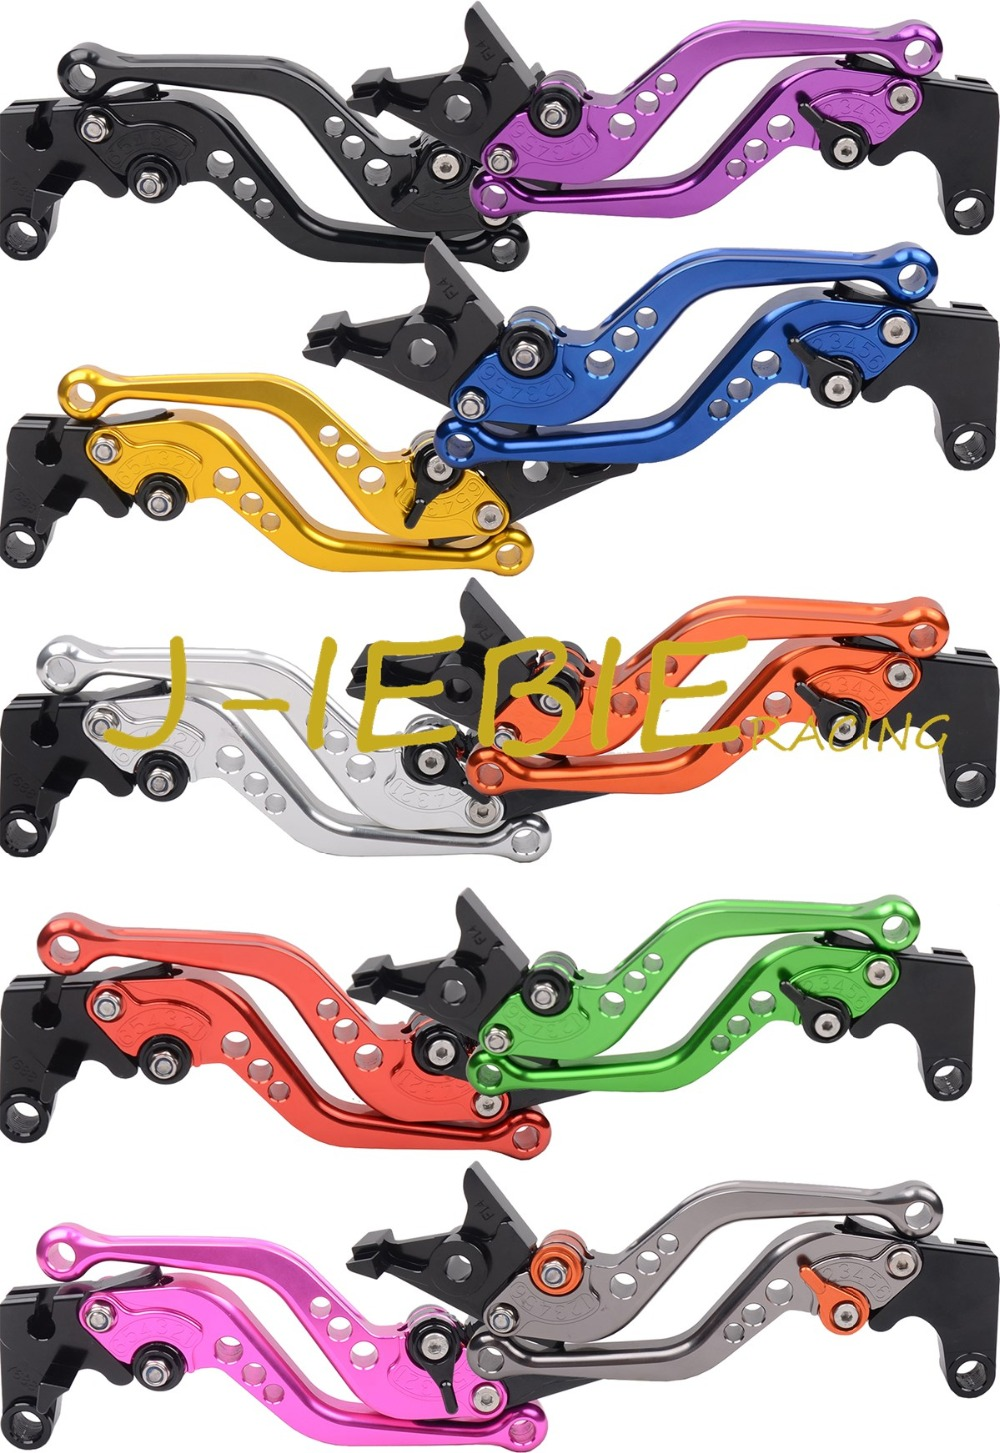 8 colors Shorty CNC Shorty Levers Brake Clutch Levers For <font><b>Suzuki</b></font> <font><b>VS1400</b></font> GLPH-GLPW 1987-1999 image